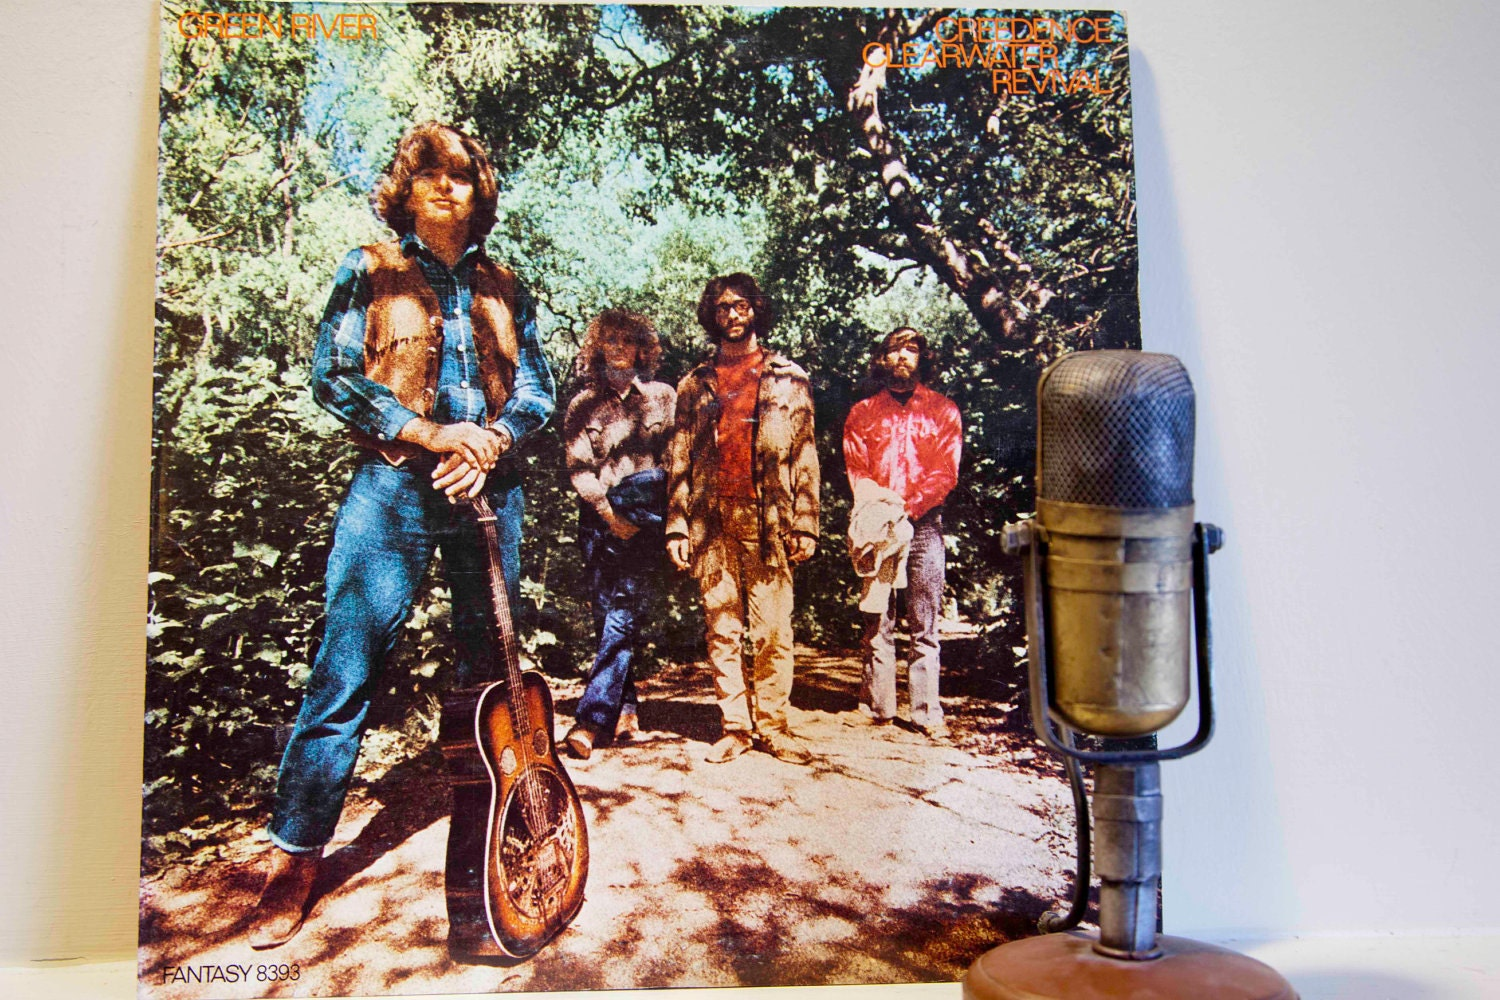 ccr creedence clearwater revival vinyl record album 1970s. Black Bedroom Furniture Sets. Home Design Ideas